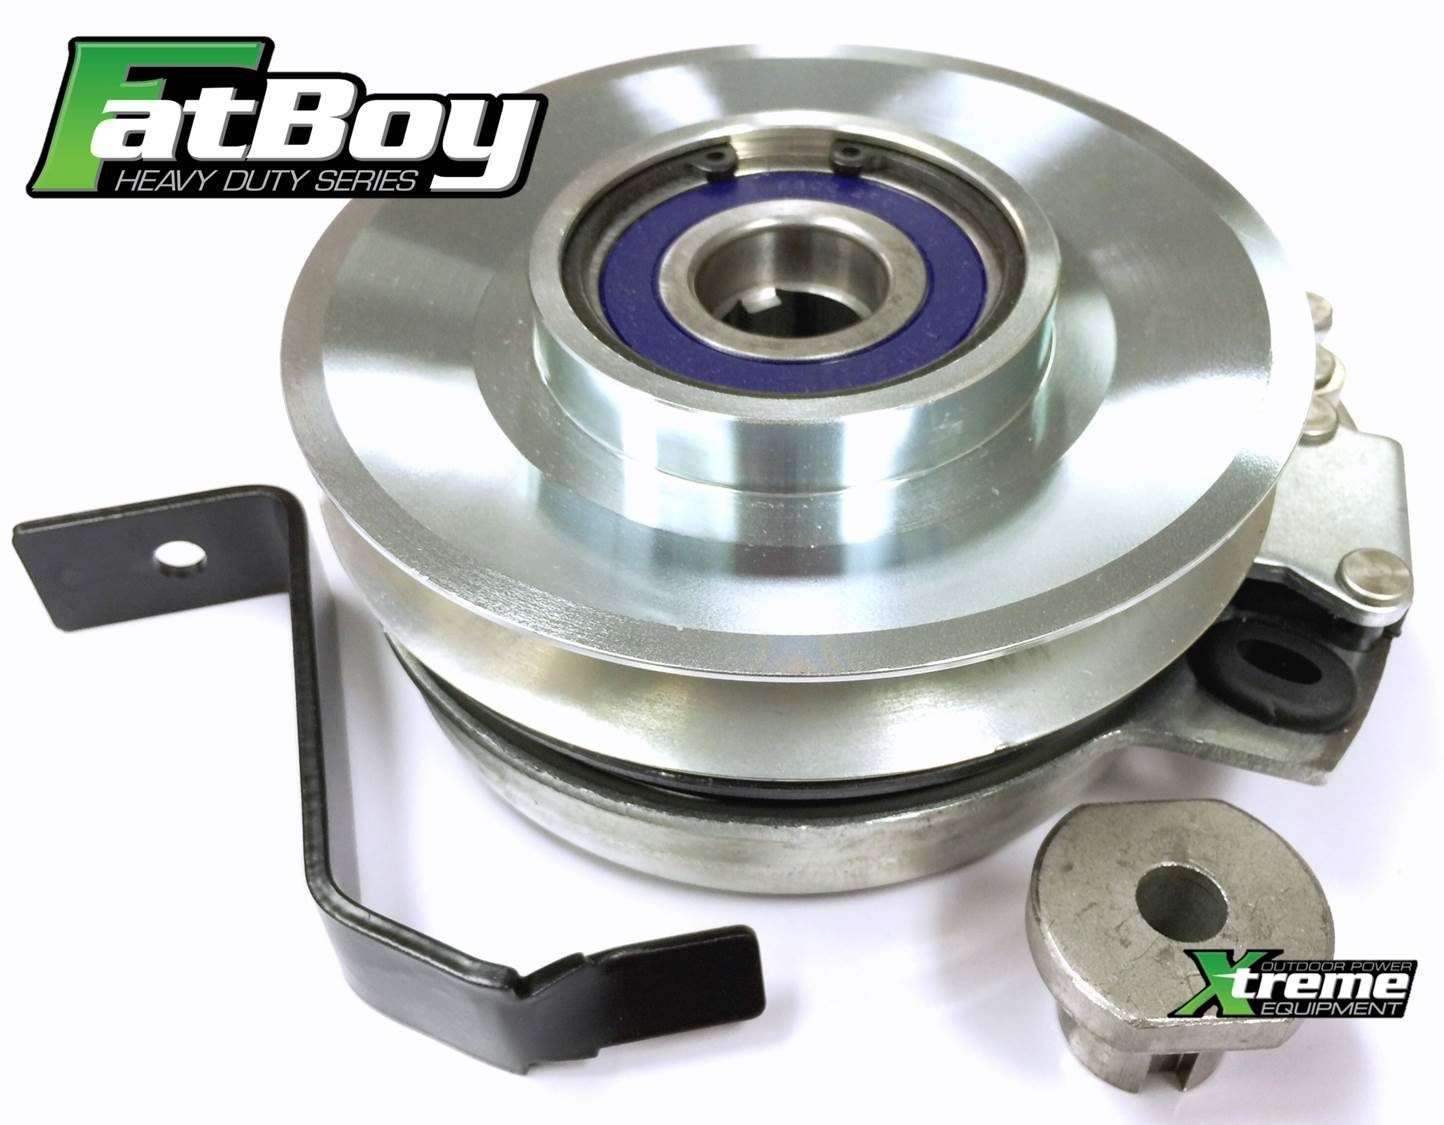 Xtreme Outdoor Power Equipment Replaces John Deere Electric PTO Clutch, L120, L130 Mower GY20878 - OEM UPGRADE!